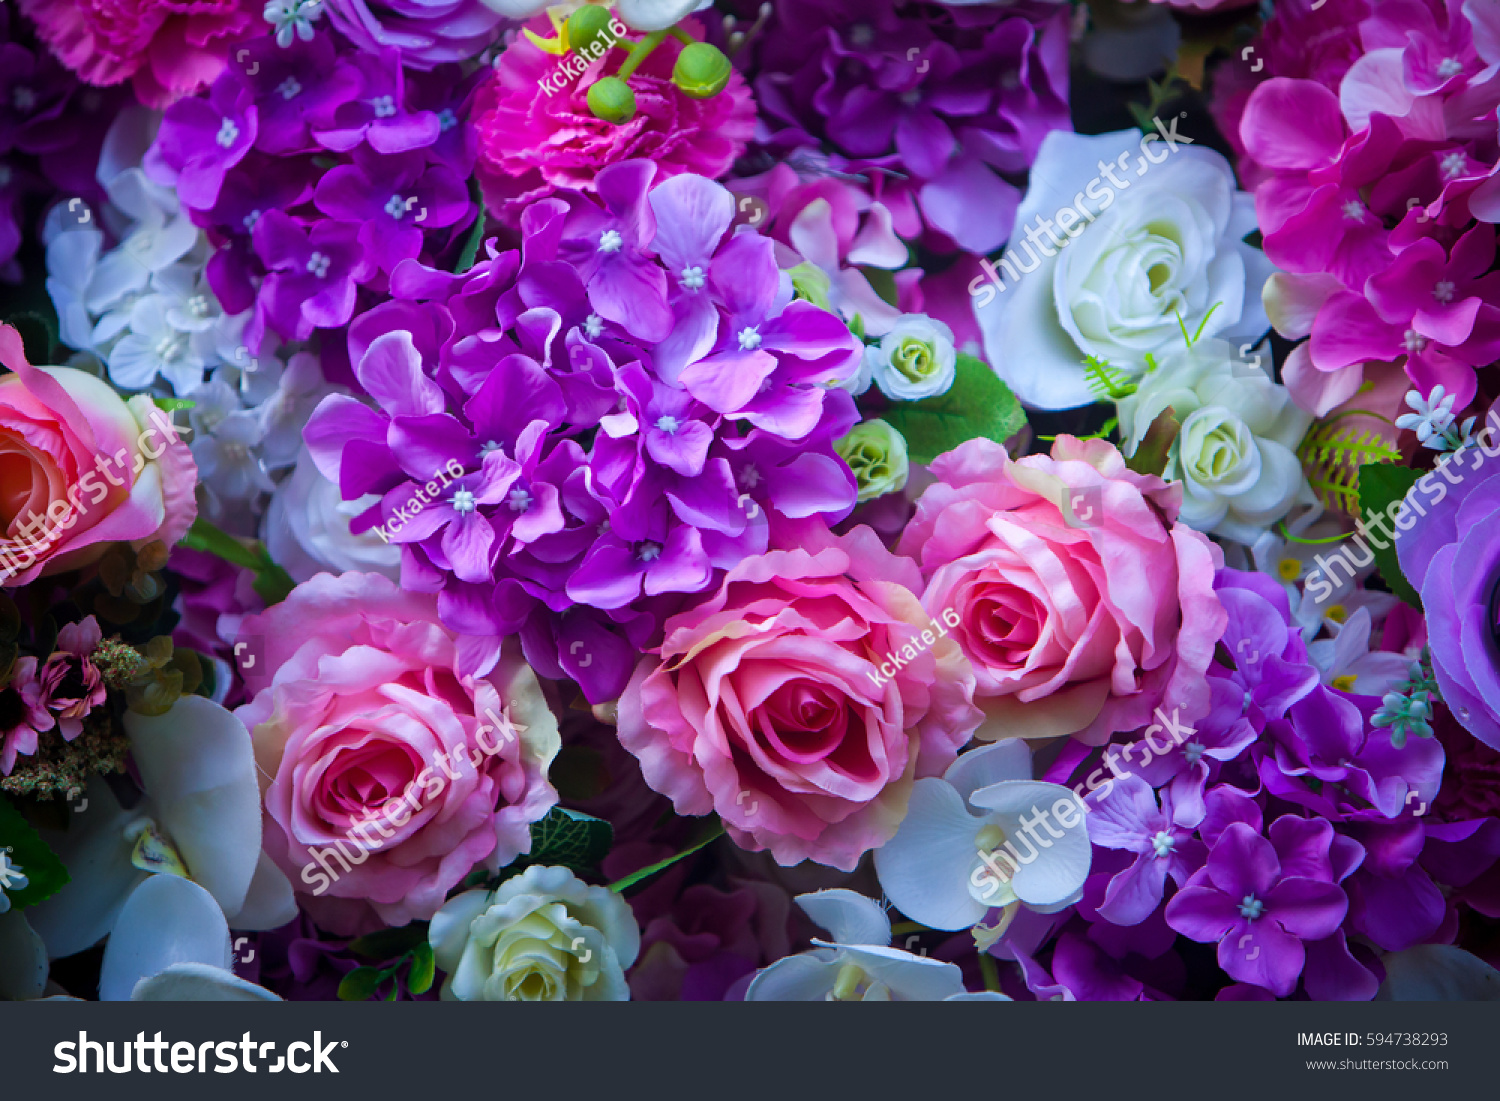 Beautiful wall made violet purple flowers stock photo edit now beautiful wall made of violet purple flowers roses valentines day background beautiful flowers izmirmasajfo